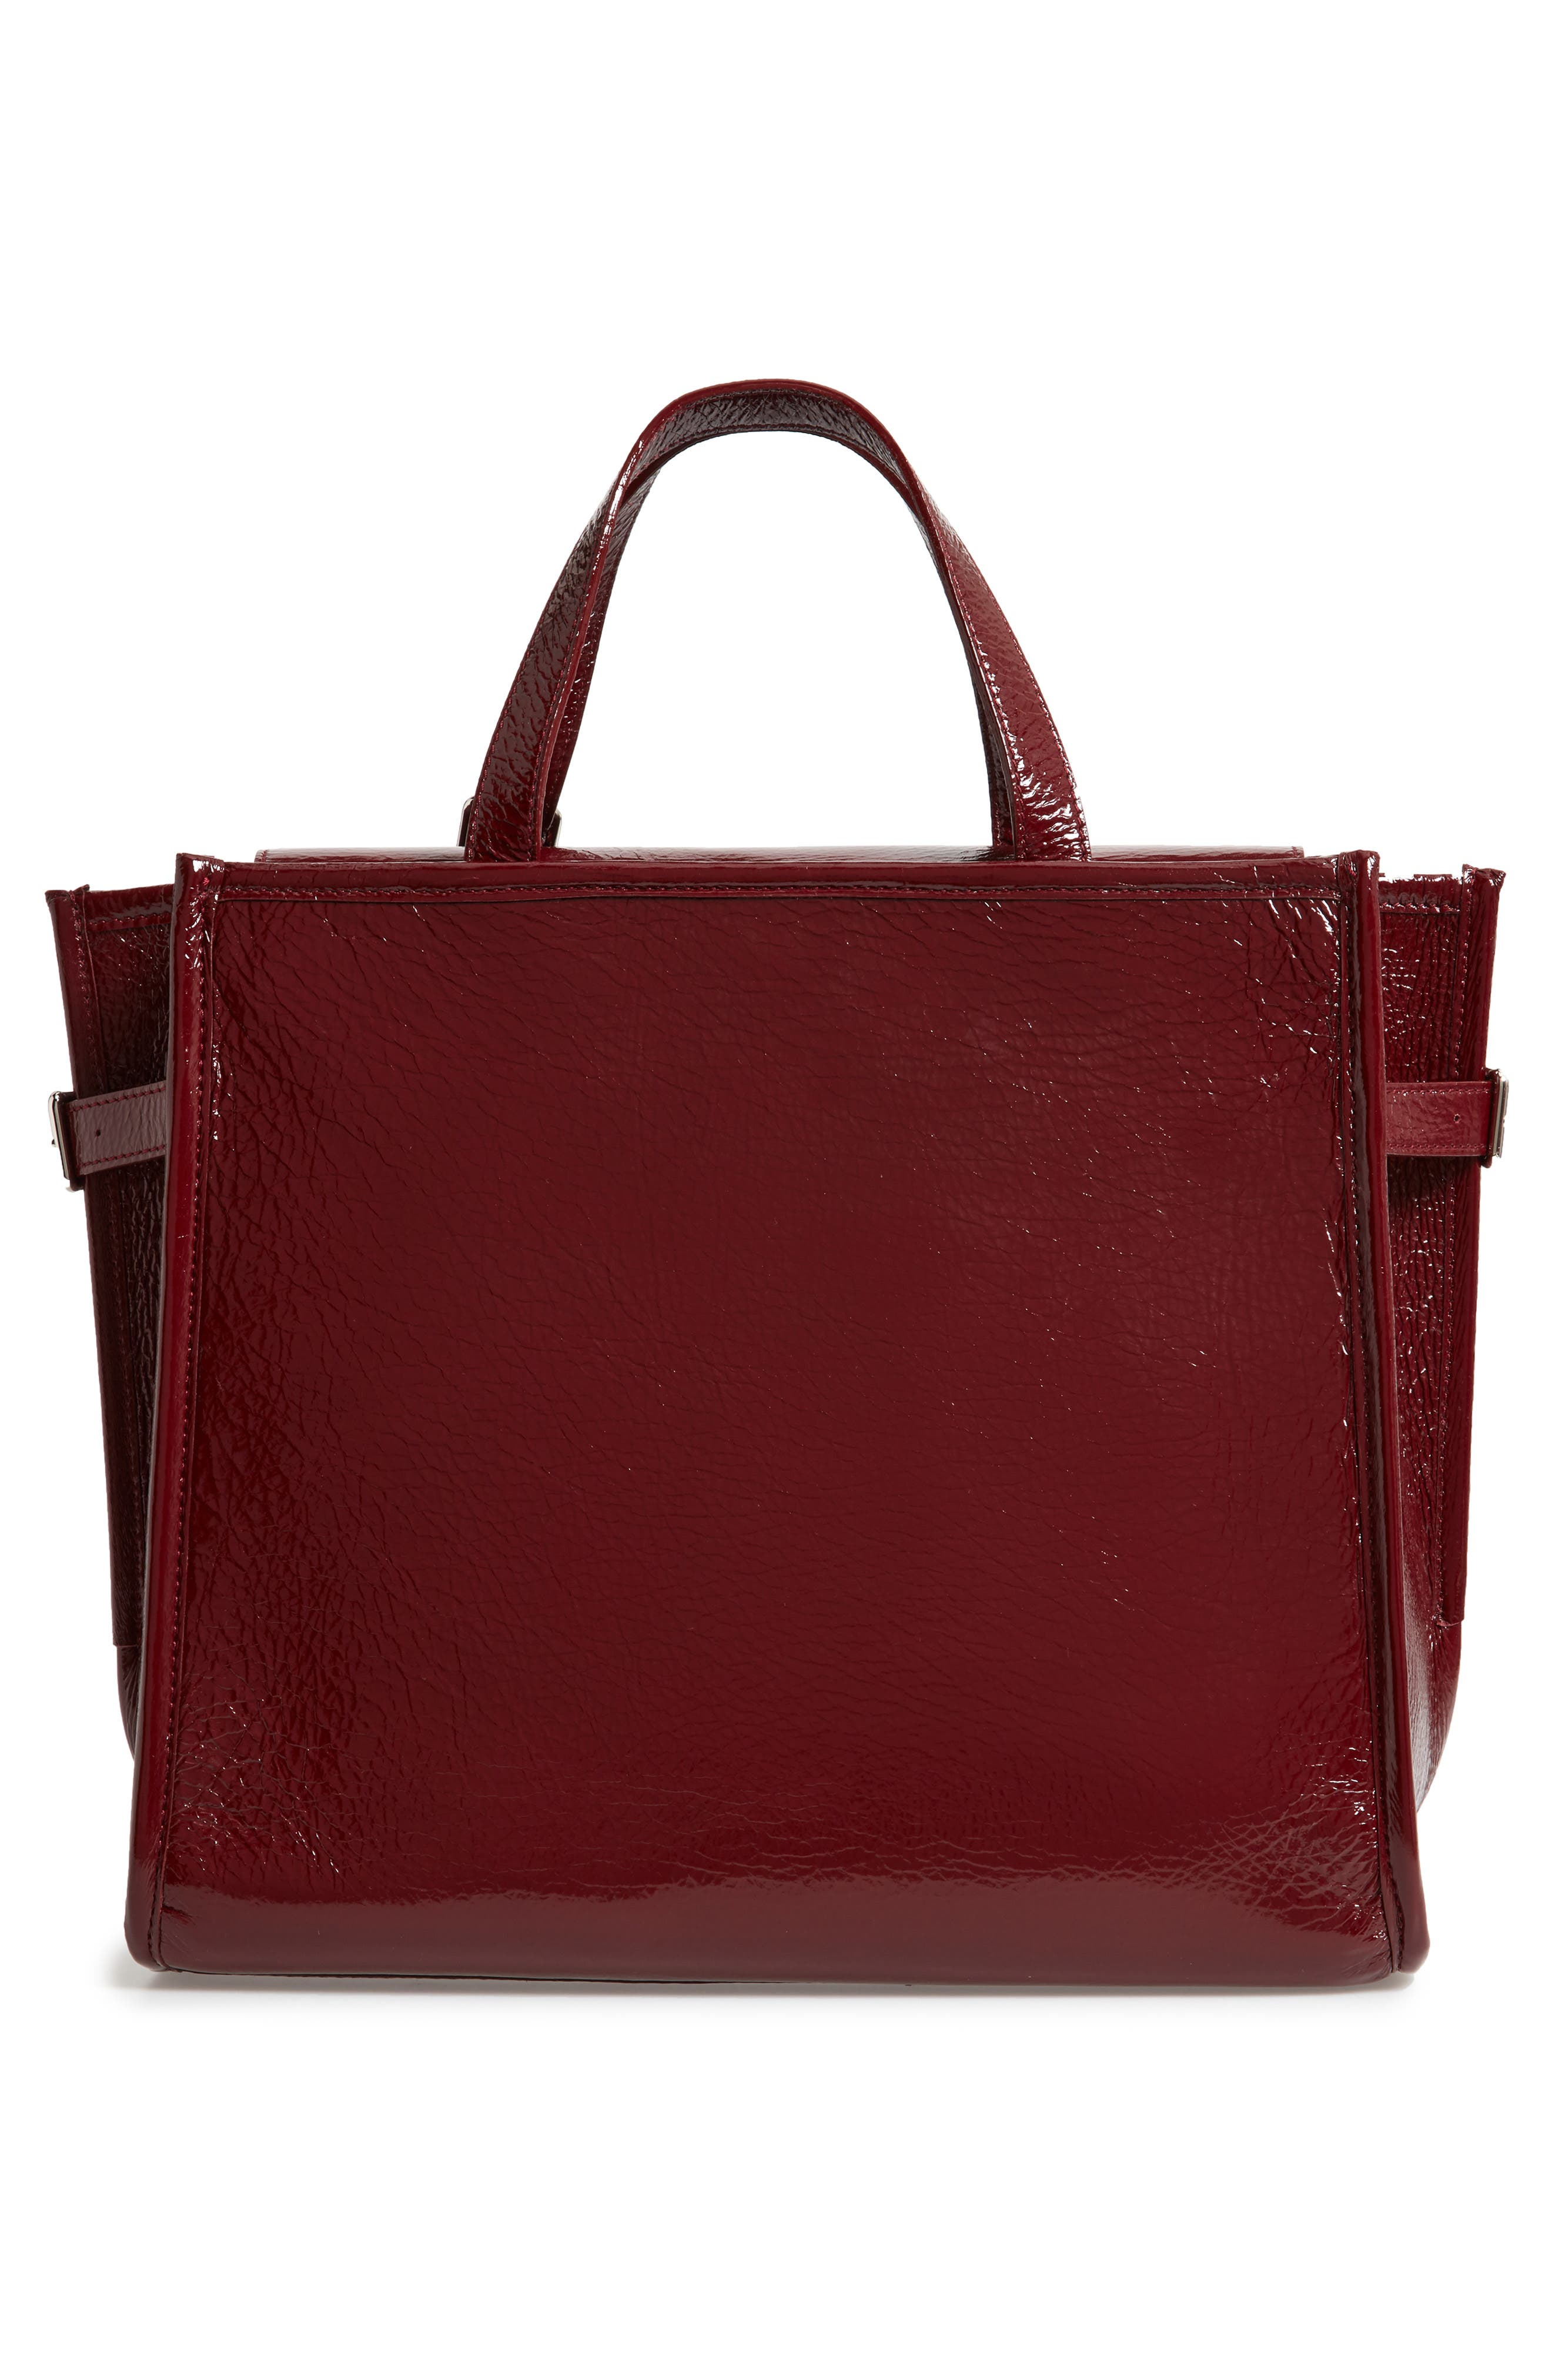 CALVIN KLEIN 209W39NYC East/West Leather Tote,                             Alternate thumbnail 3, color,                             DARK BURGUNDY